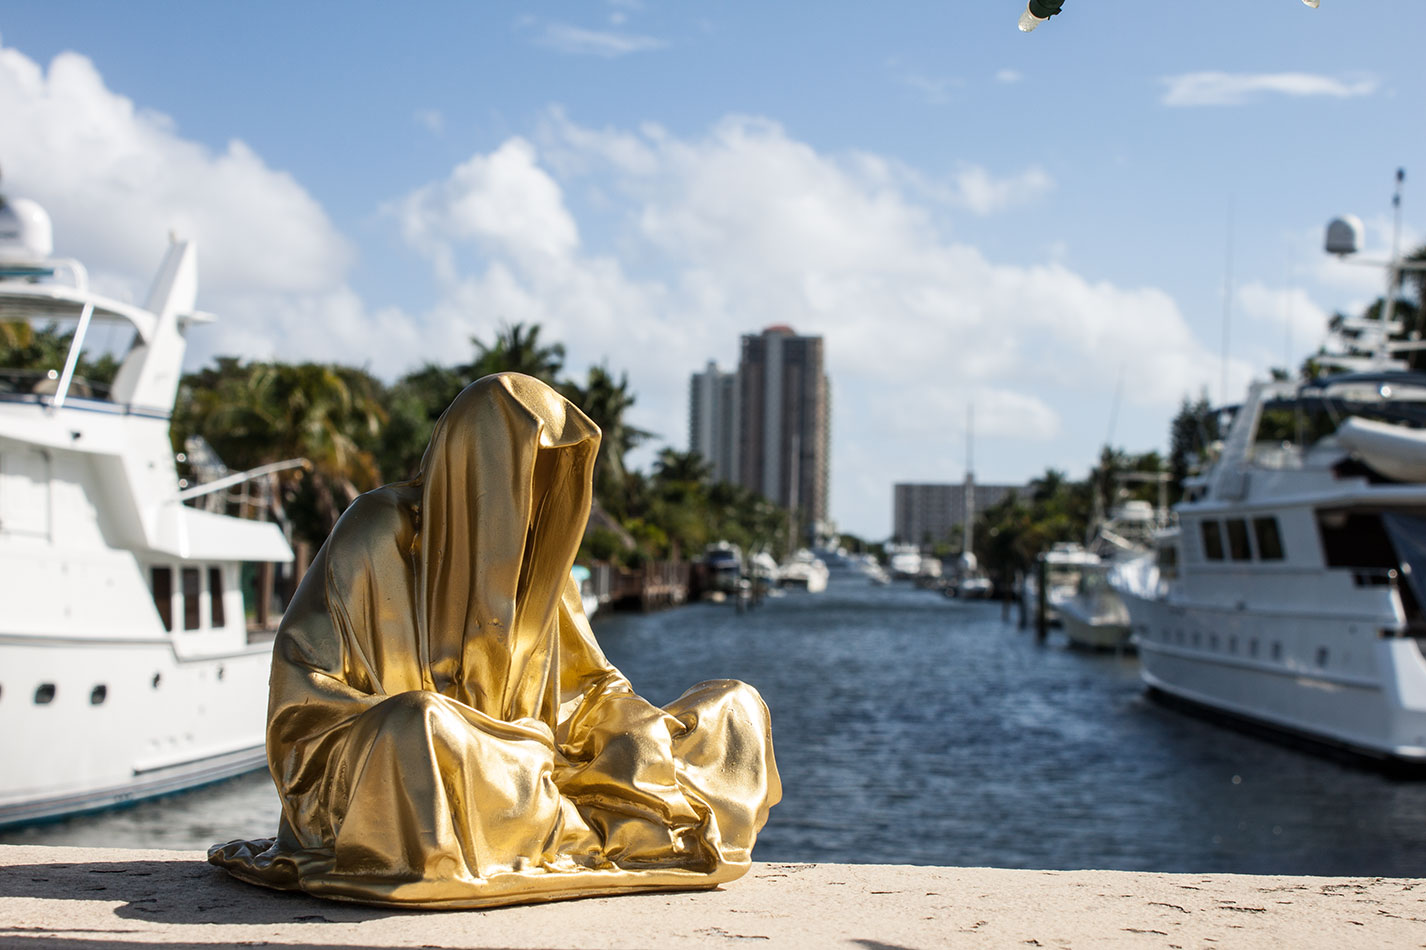 art-basel-miami-beach-fair-usa-florida-guardians-of-time-manfred-kili-kielnhofer-contemporary-fine-art-modern-arts-design-antiques-sculpture-5803